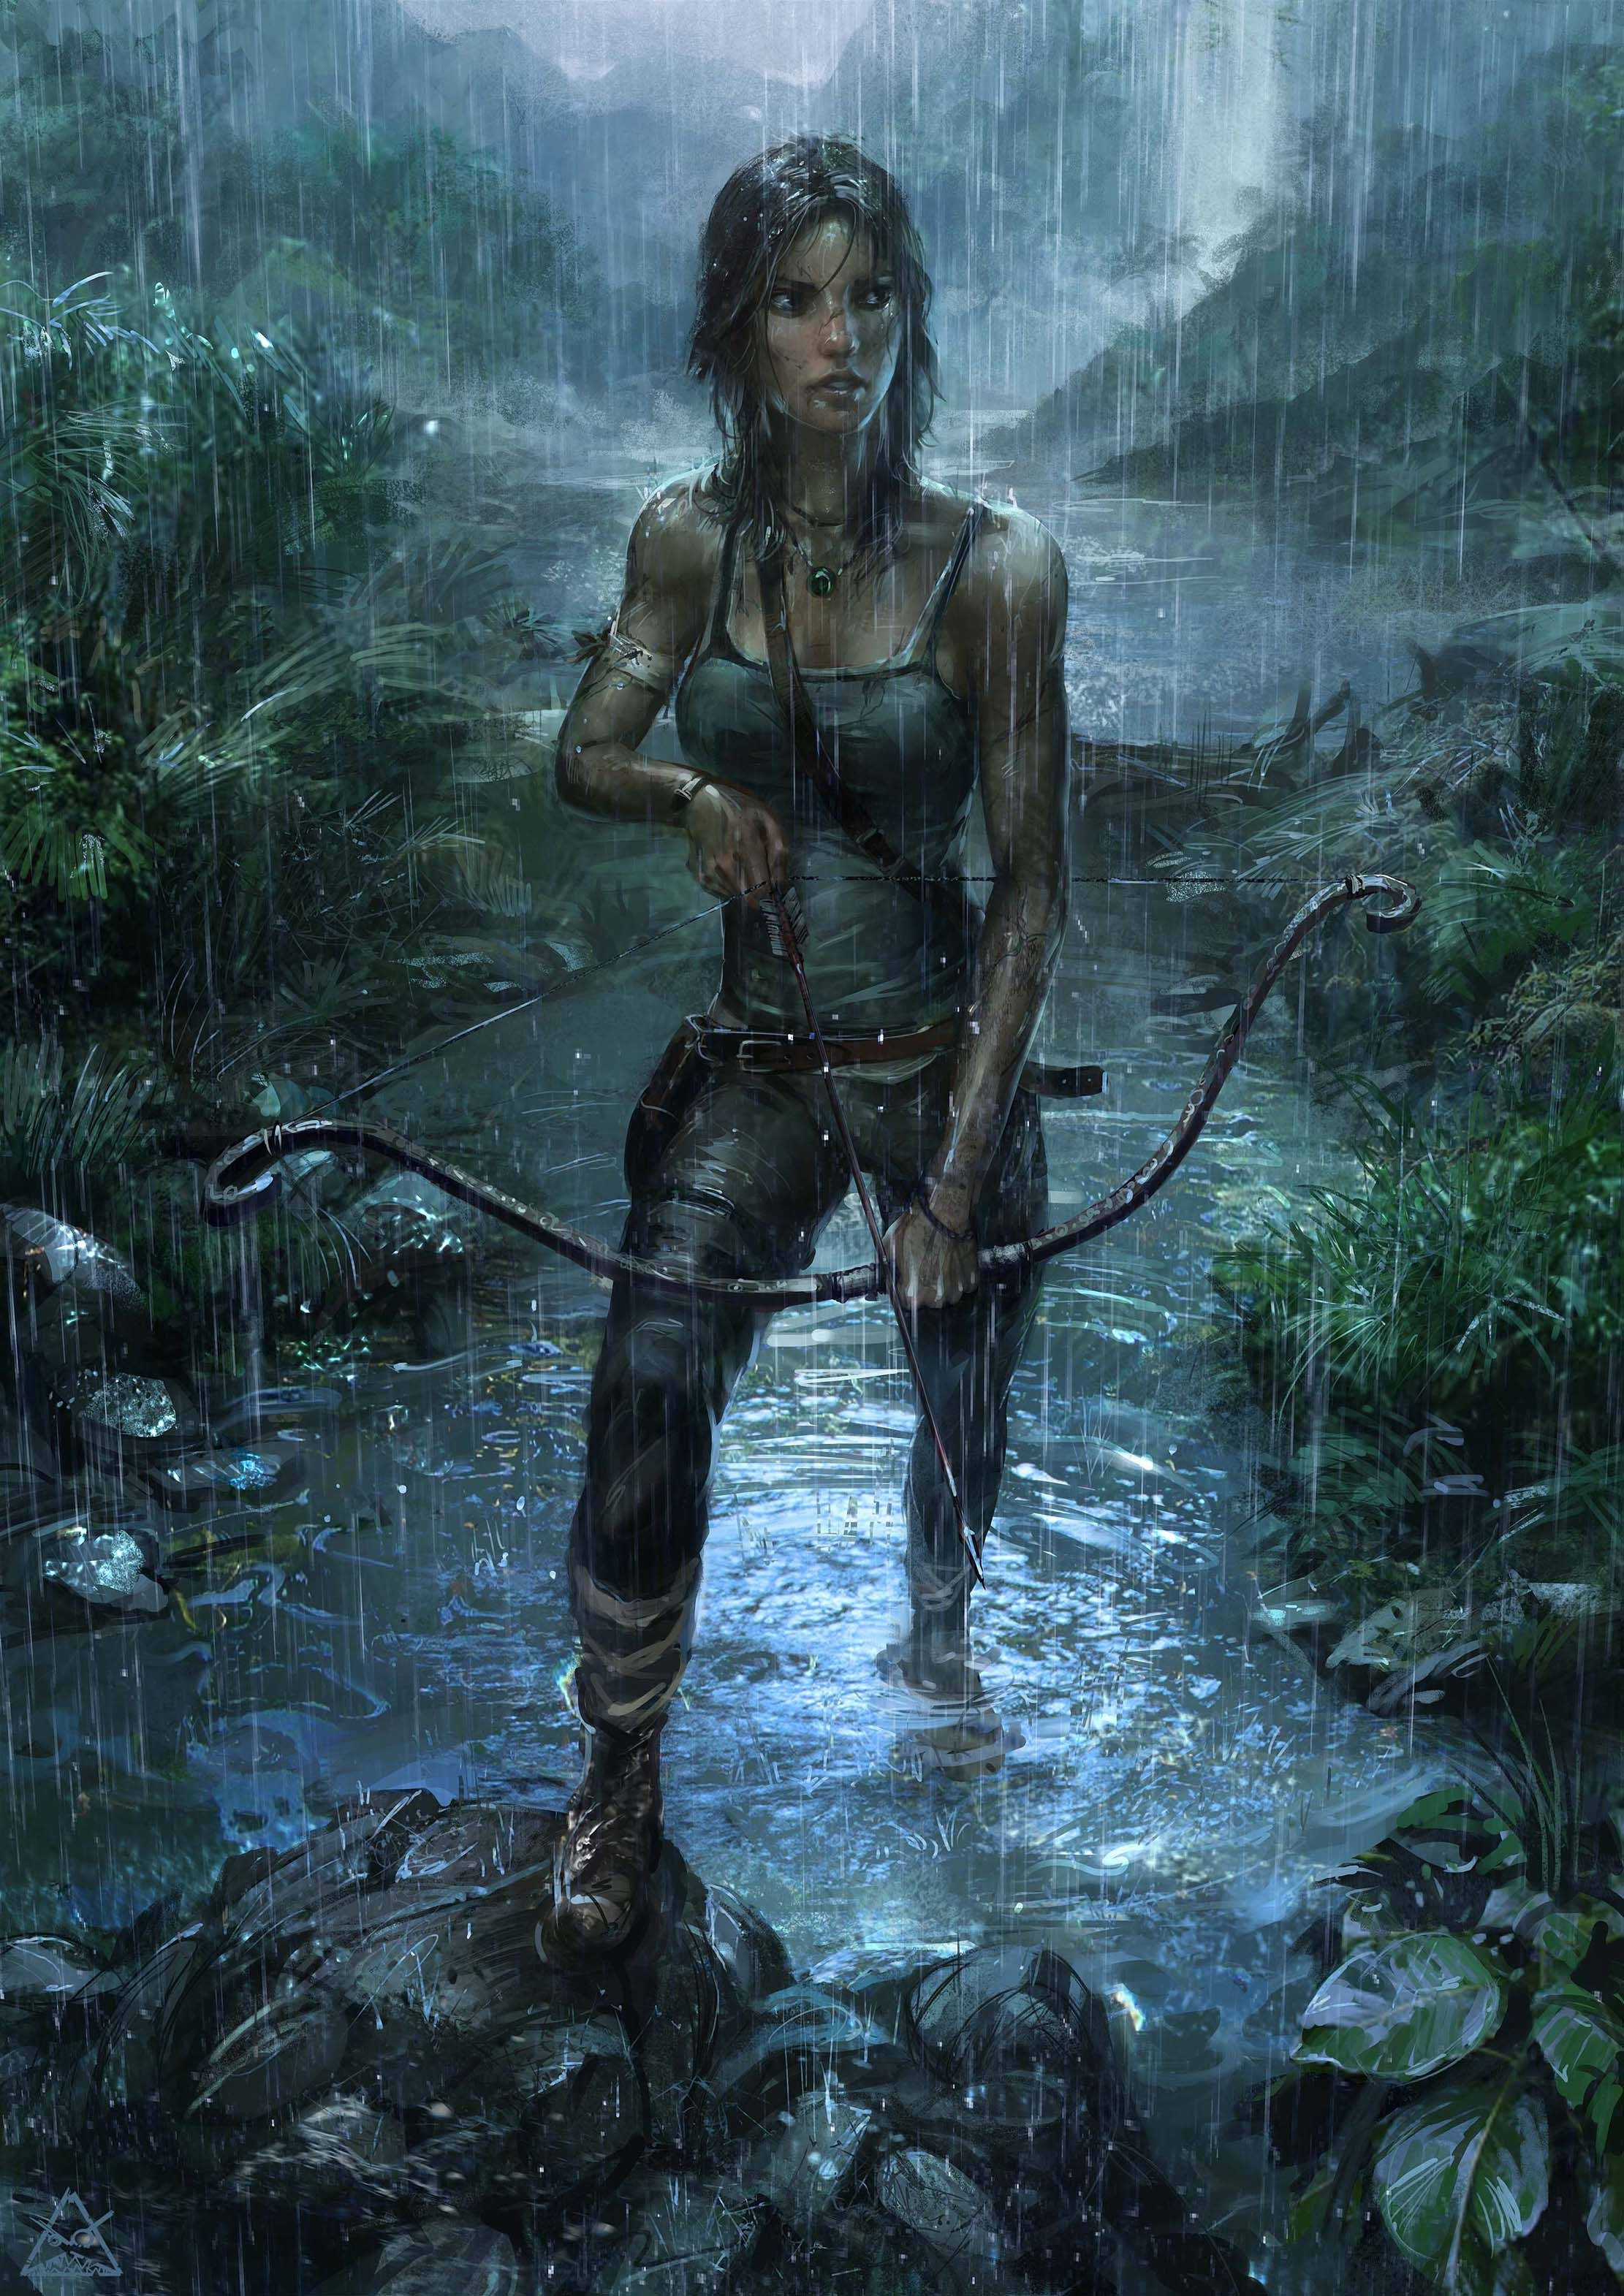 tomb raider fan art video games pinterest raiders fans raiders and tomb raiders. Black Bedroom Furniture Sets. Home Design Ideas